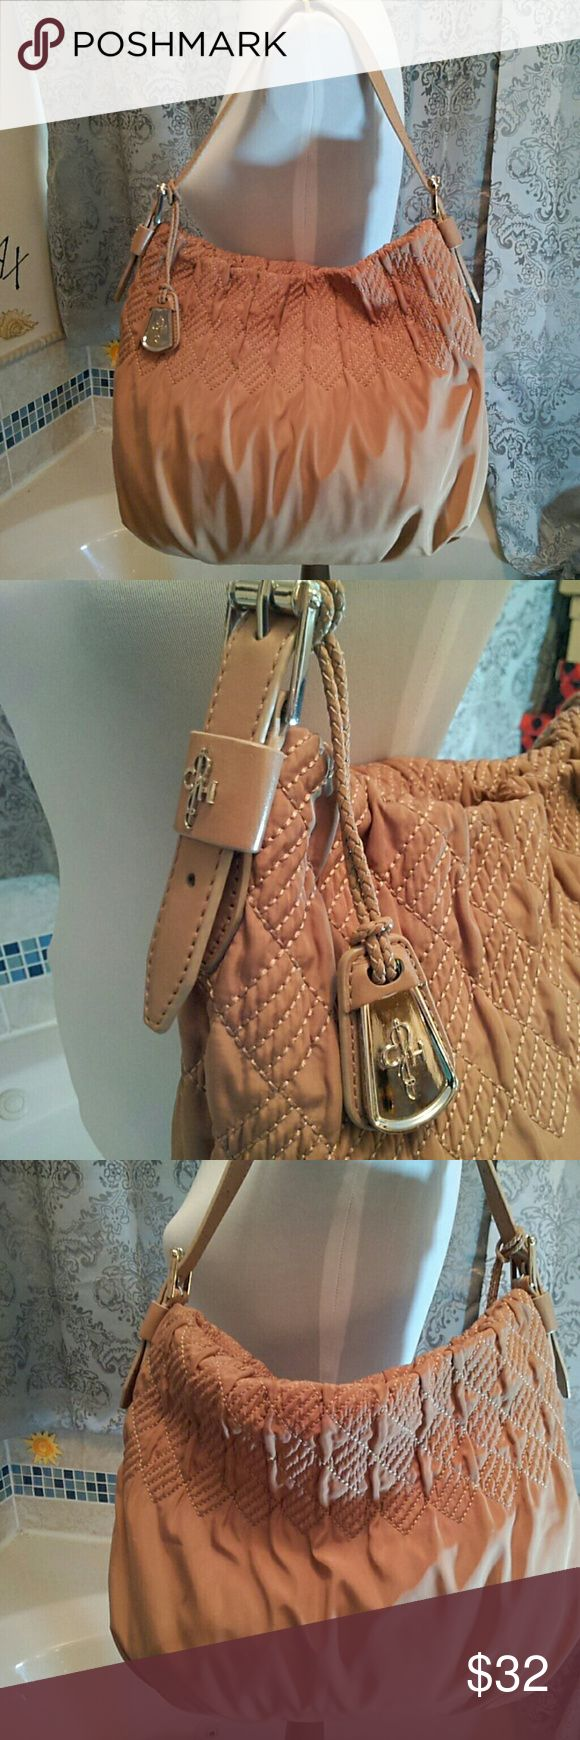 "Cole Haan tan fabric shoulder bag adorable bag with rows of smocking design around the top; silver hardware; microfiber fabric in a medium tan color; 1 strap with belt buckles on each end so length can be adjusted as needed; zipper on top; inside is a satiny mauve fabric with tan trim - minor ink marks; usual zip and slip pockets; large size 14""x11""dingy on bottom and 1 small mark - please see pics  GUC  (B-1) Cole Haan Bags Shoulder Bags"